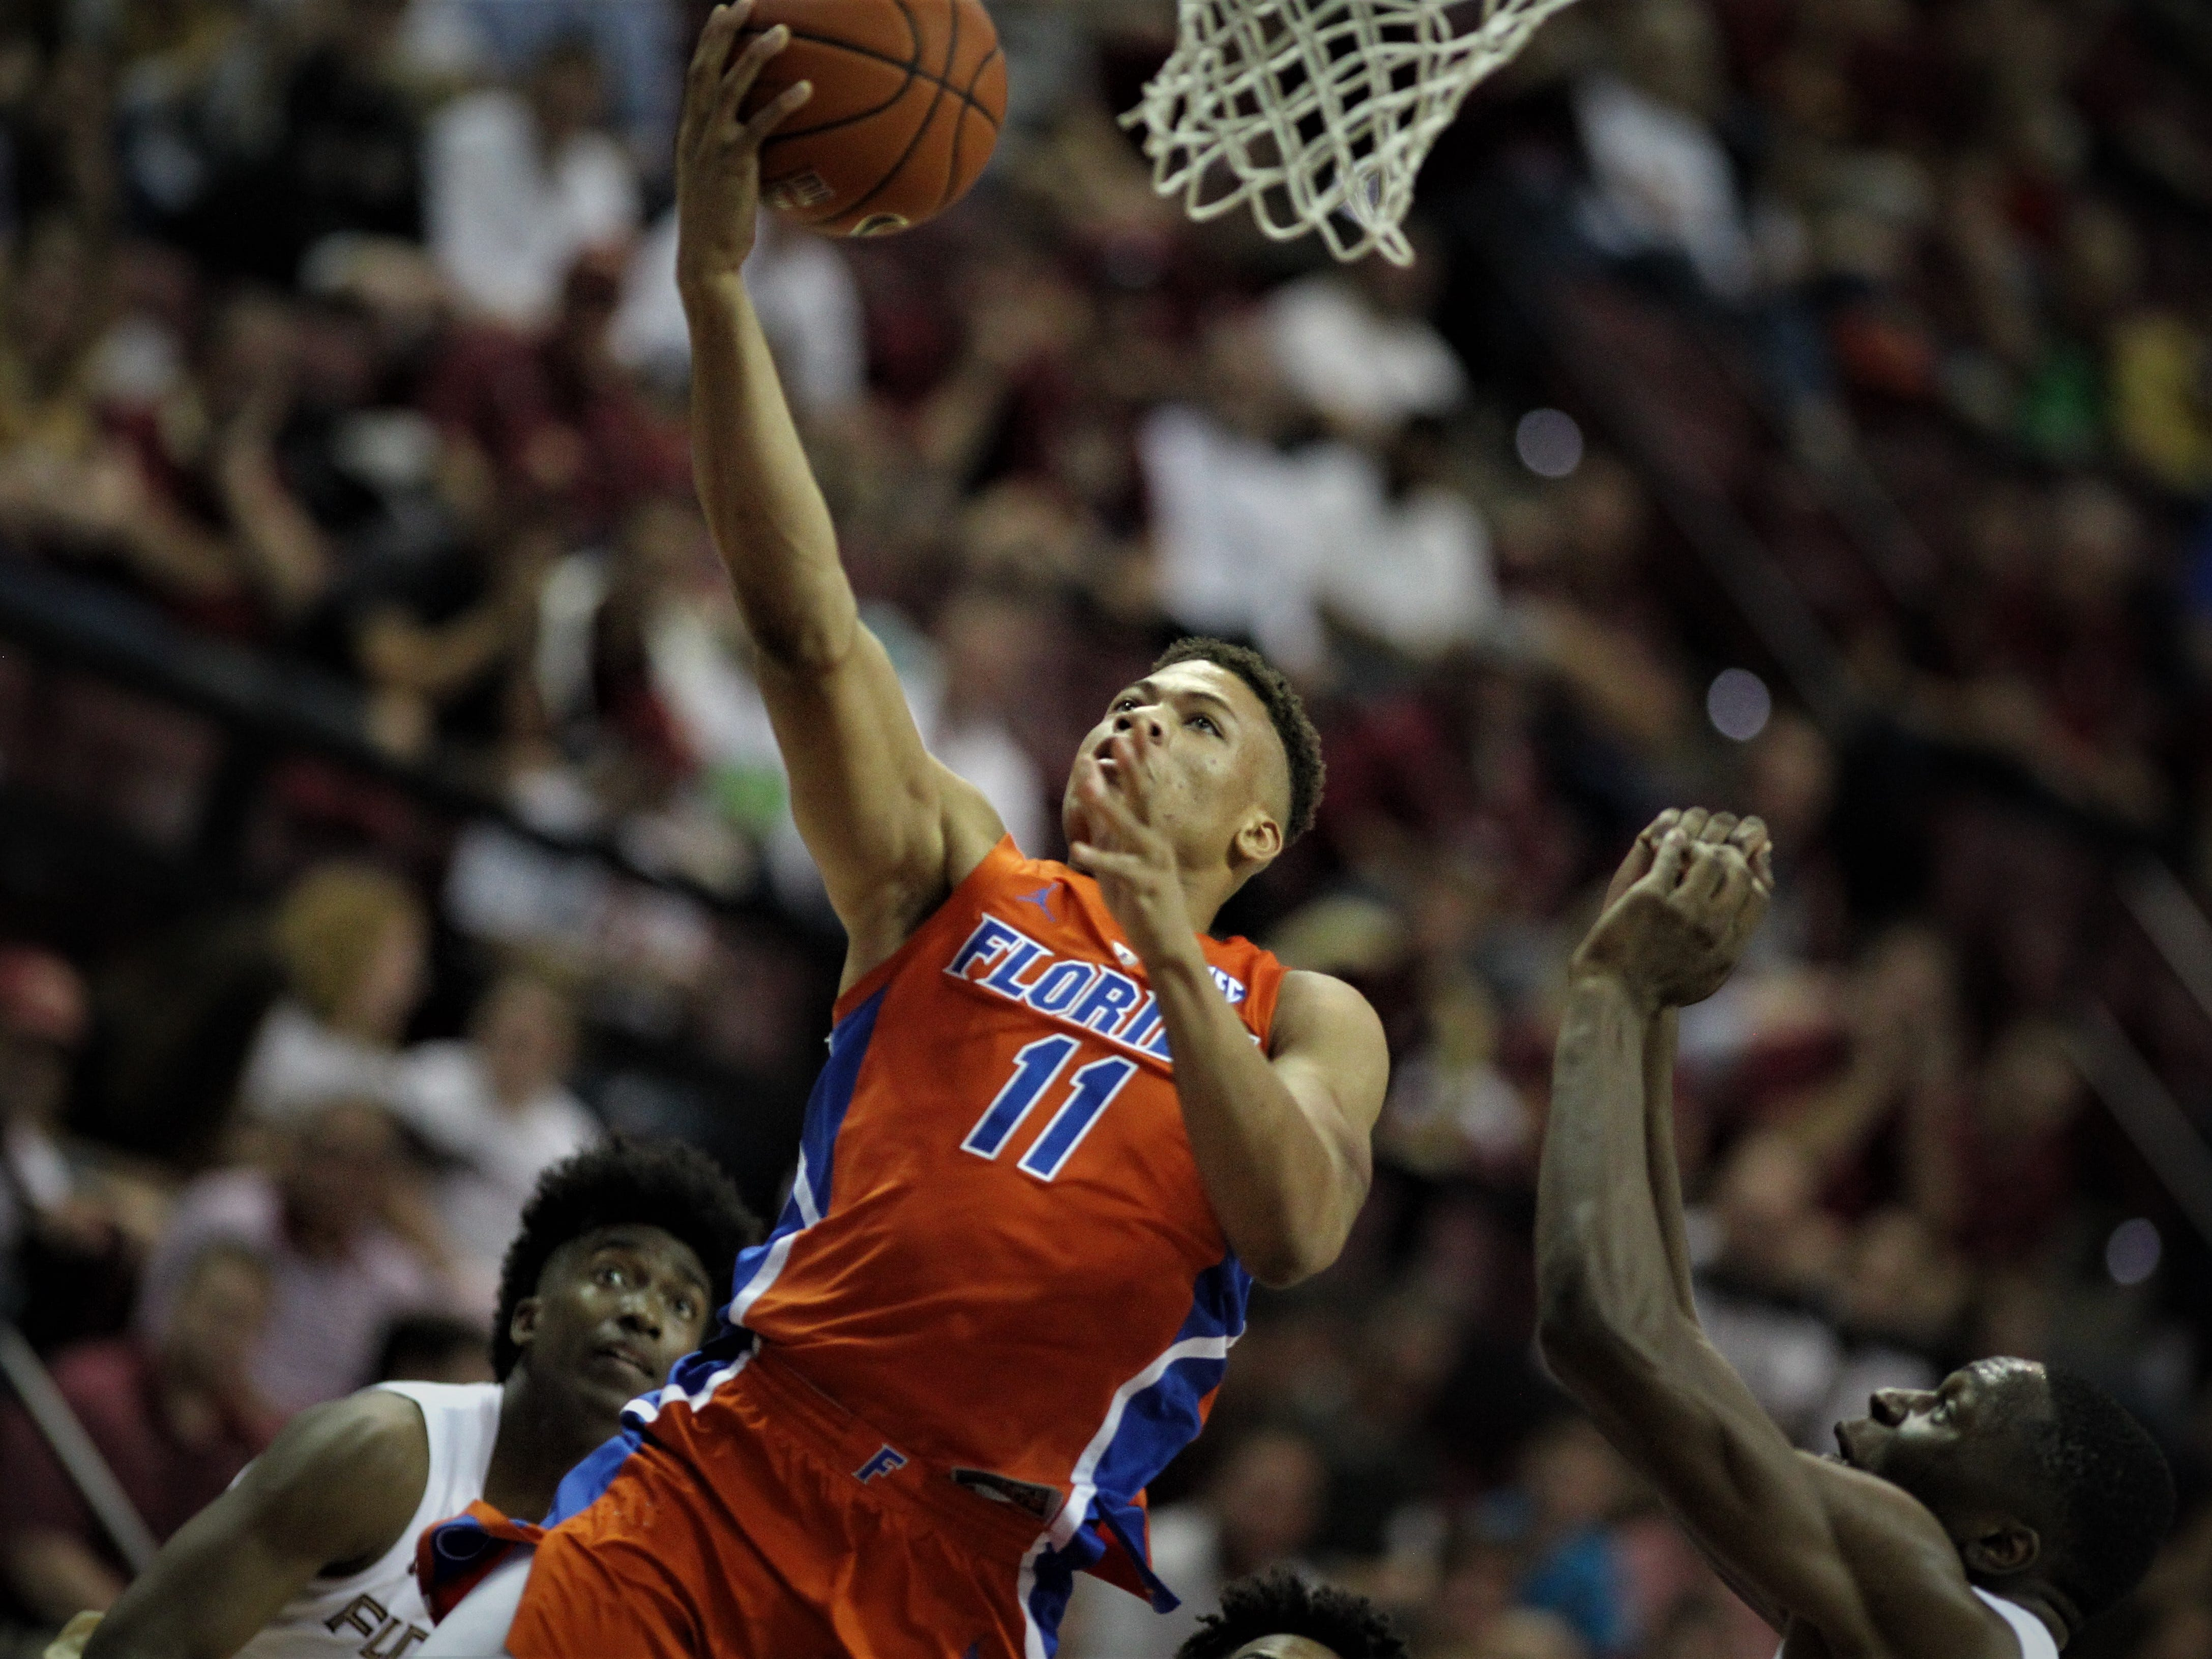 Florida's Keyontae Johnson goes up for a layup against FSU during the Sunshine Showdown game Tuesday at the Tucker Civic Center.